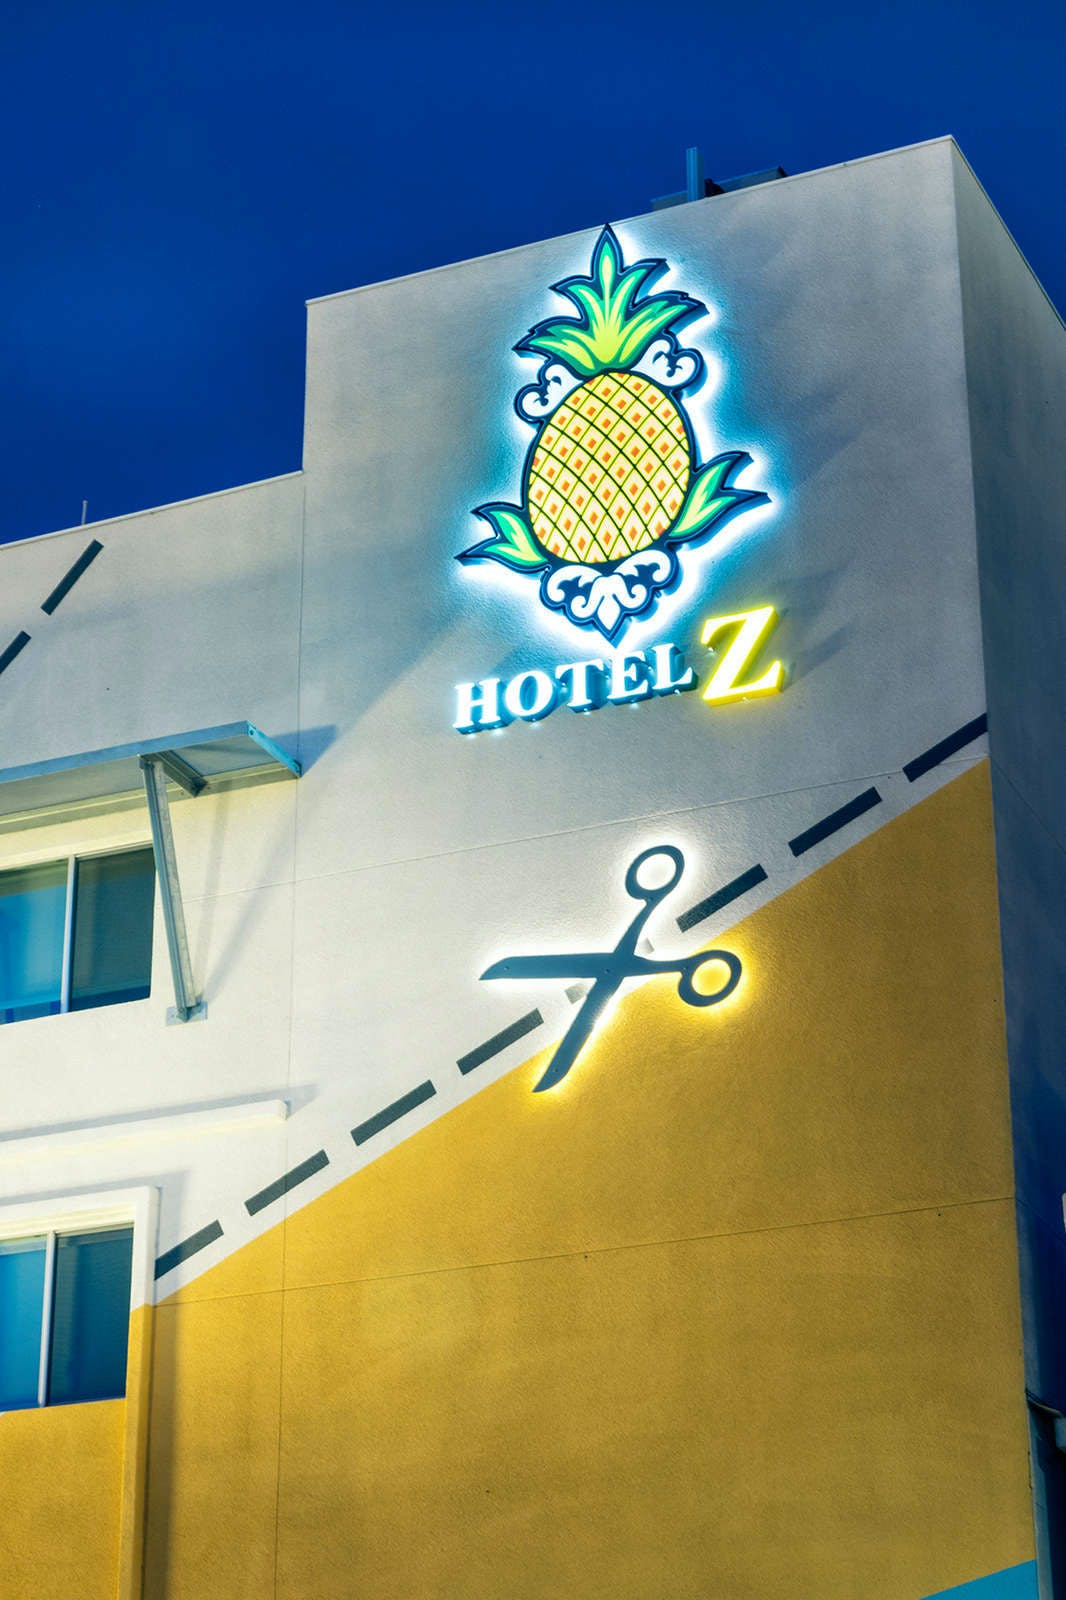 Staypineapple at Hotel Z